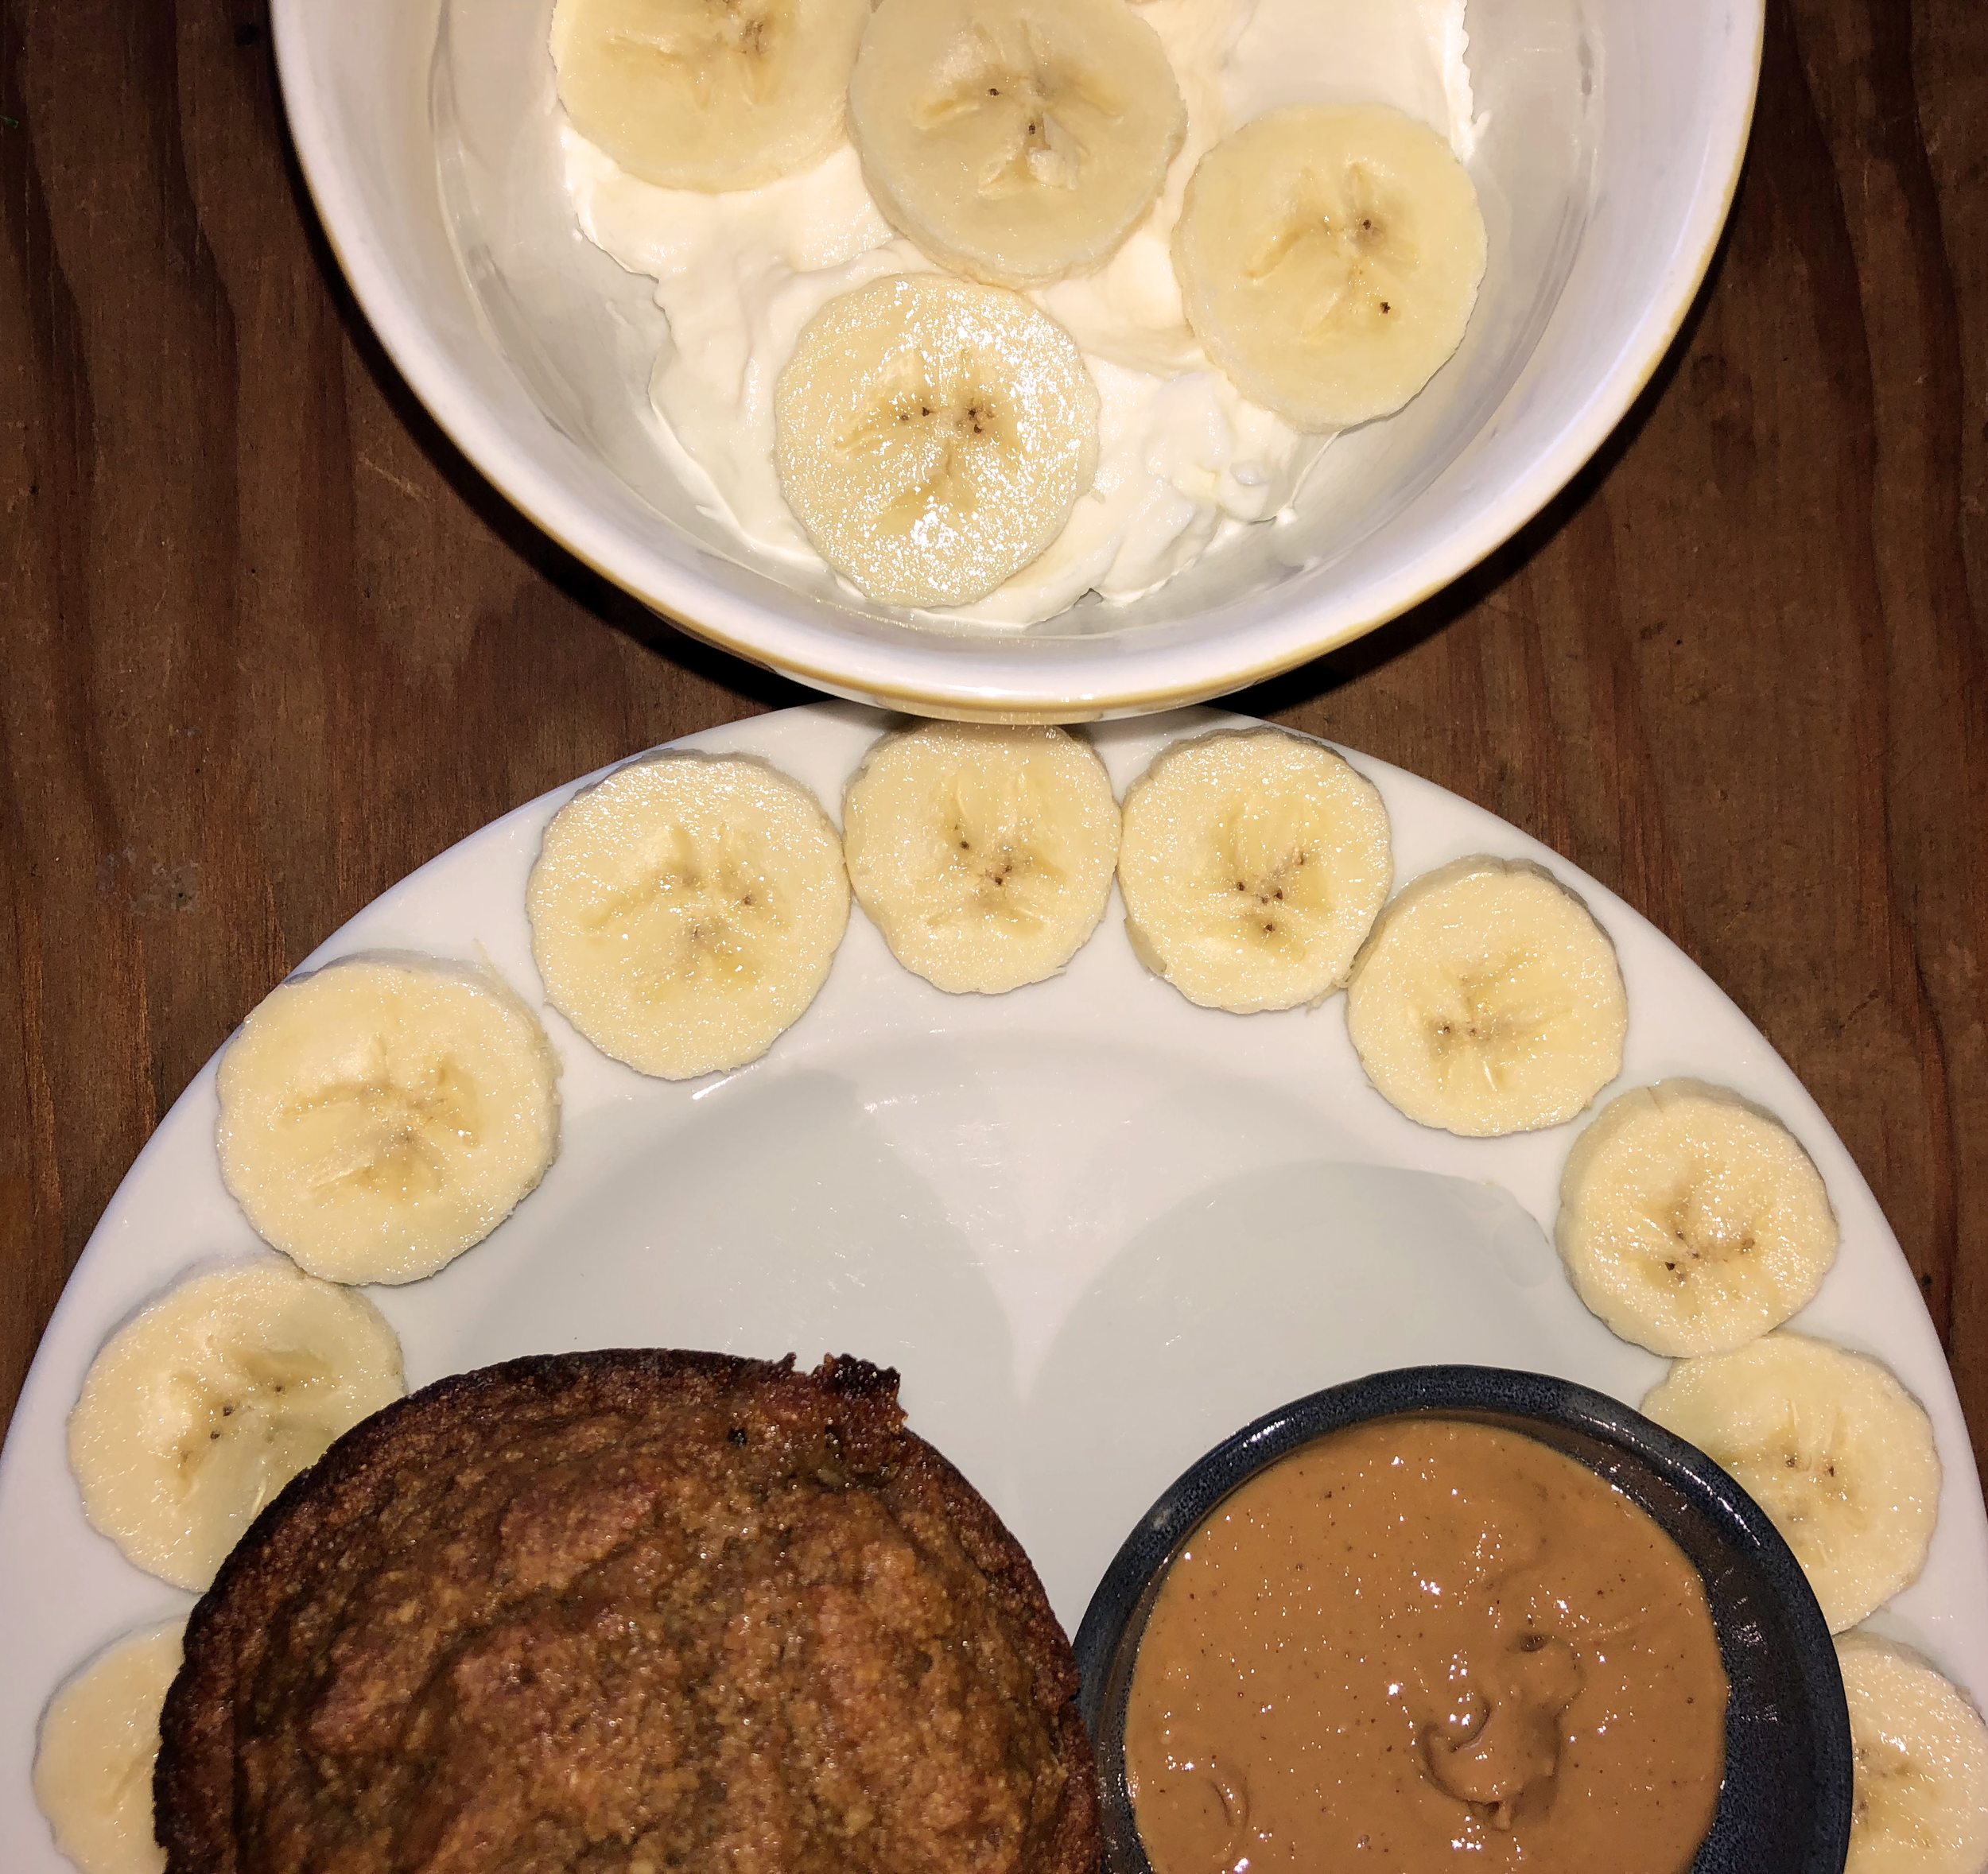 Breakfast: Banana, greek yogurt, peanut butter and a carrot muffin - The longer you stare at a banana slice, the more it looks like a Shih Tzu's face. Also, I tried to do the pretty plating thing again like yesterday's breakfast, but the jury is still out on whether I was successful or not. Good thing this post is almost over. You're doing great, keep reading!